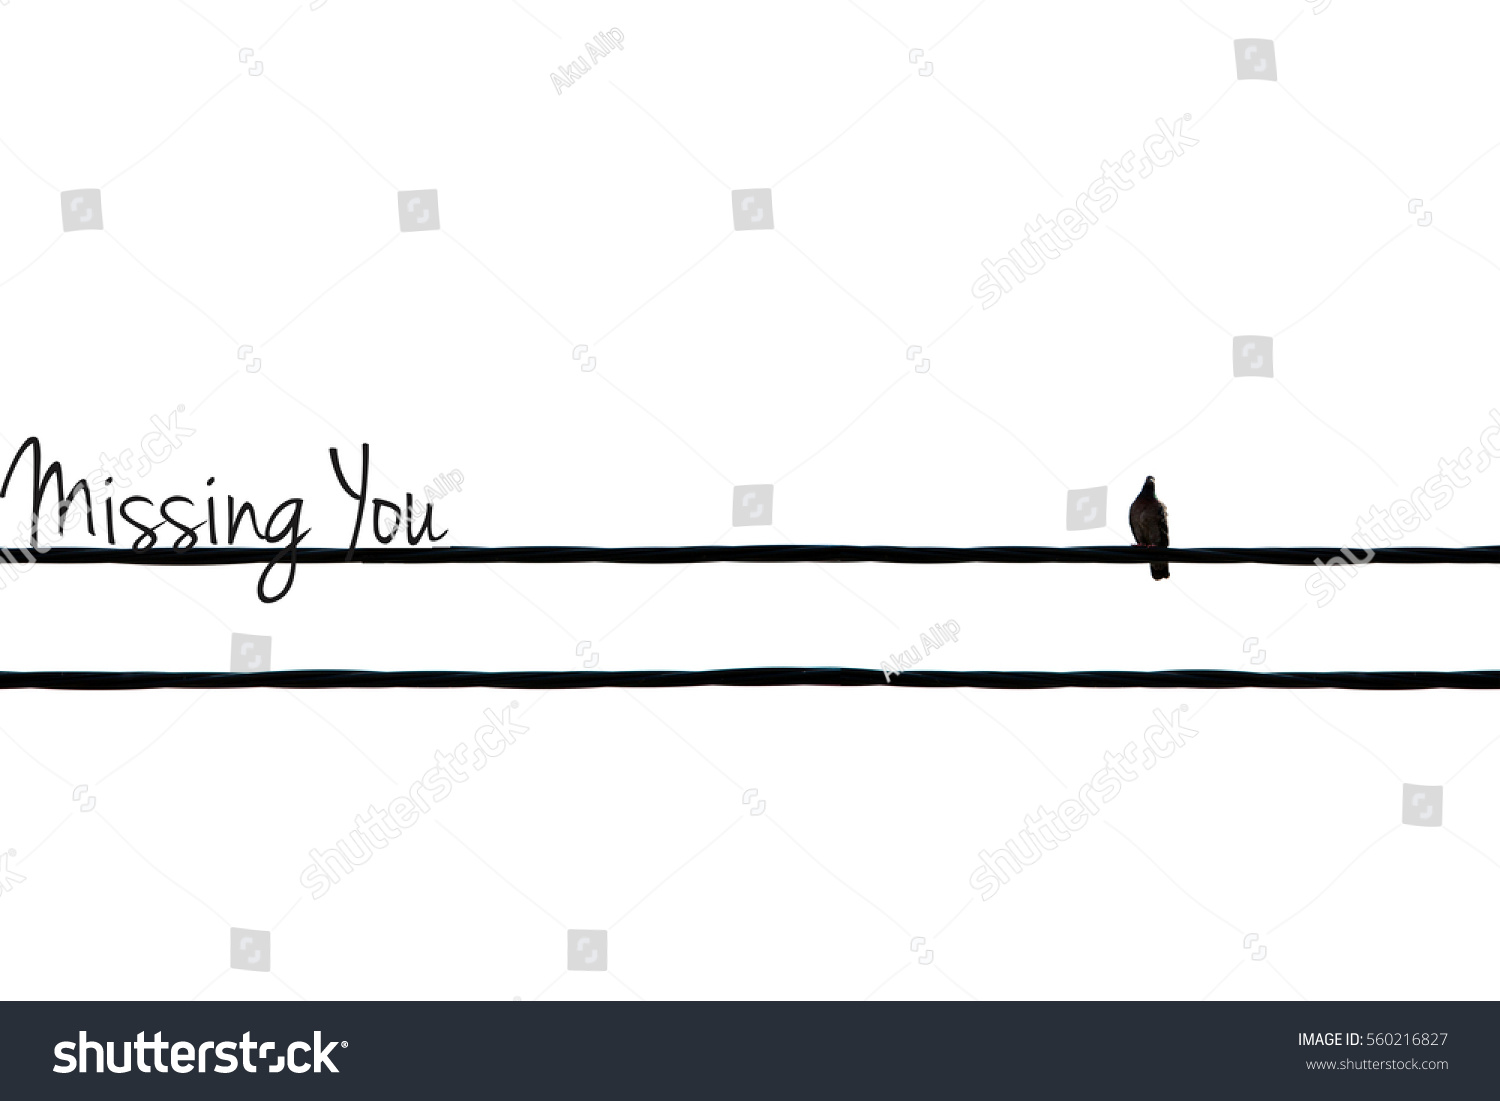 Concept Image Single Bird On Wire Stock Photo 560216827 - Shutterstock